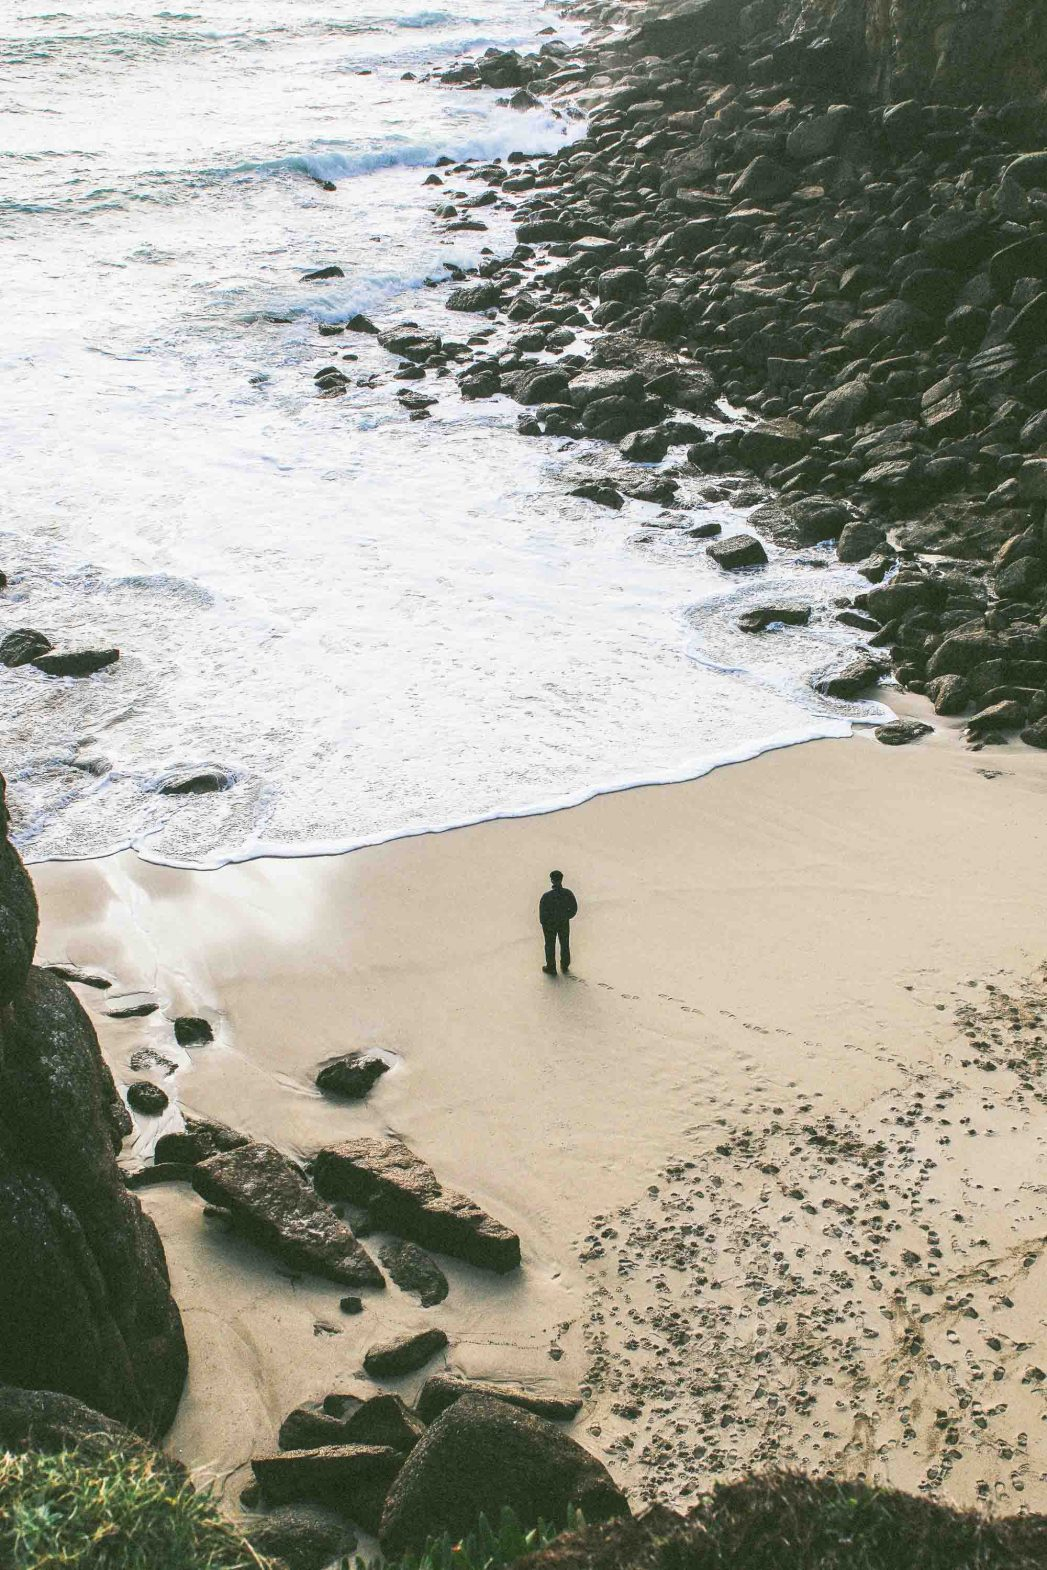 A solitary figure on a beach in Cornwall.